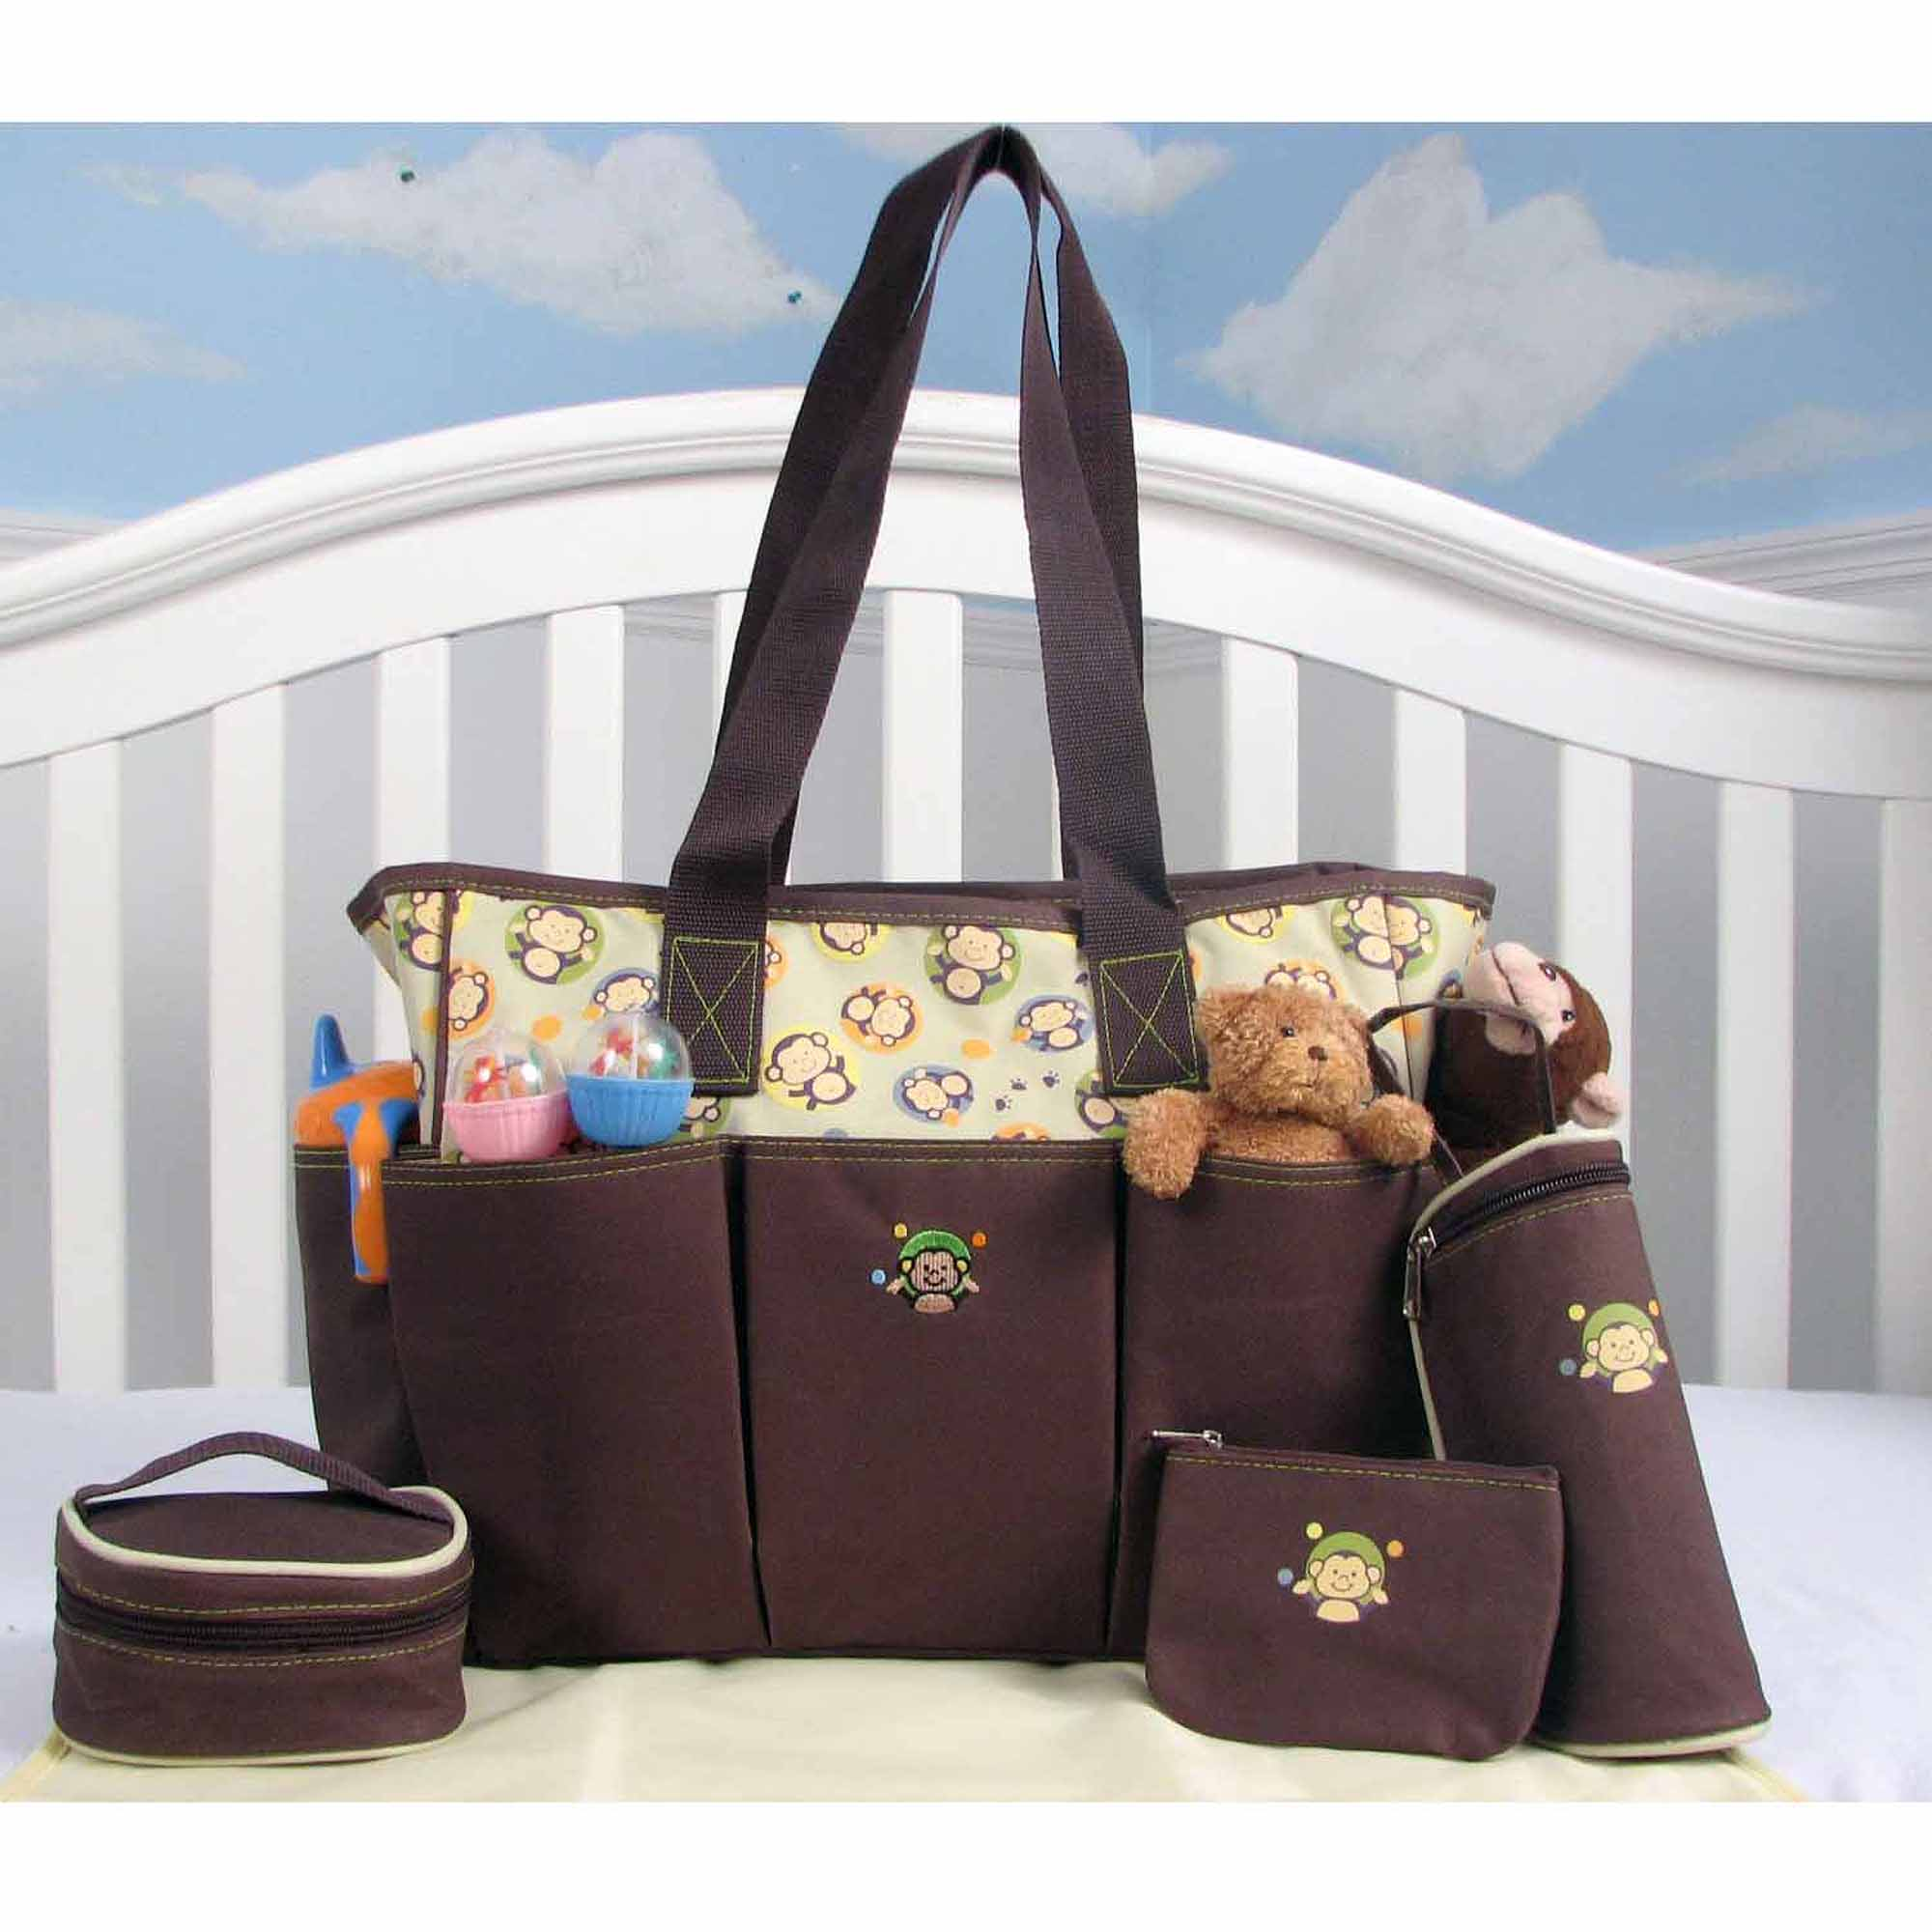 SOHO Curious Monkey 5-in-1 Deluxe Diaper Tote Set